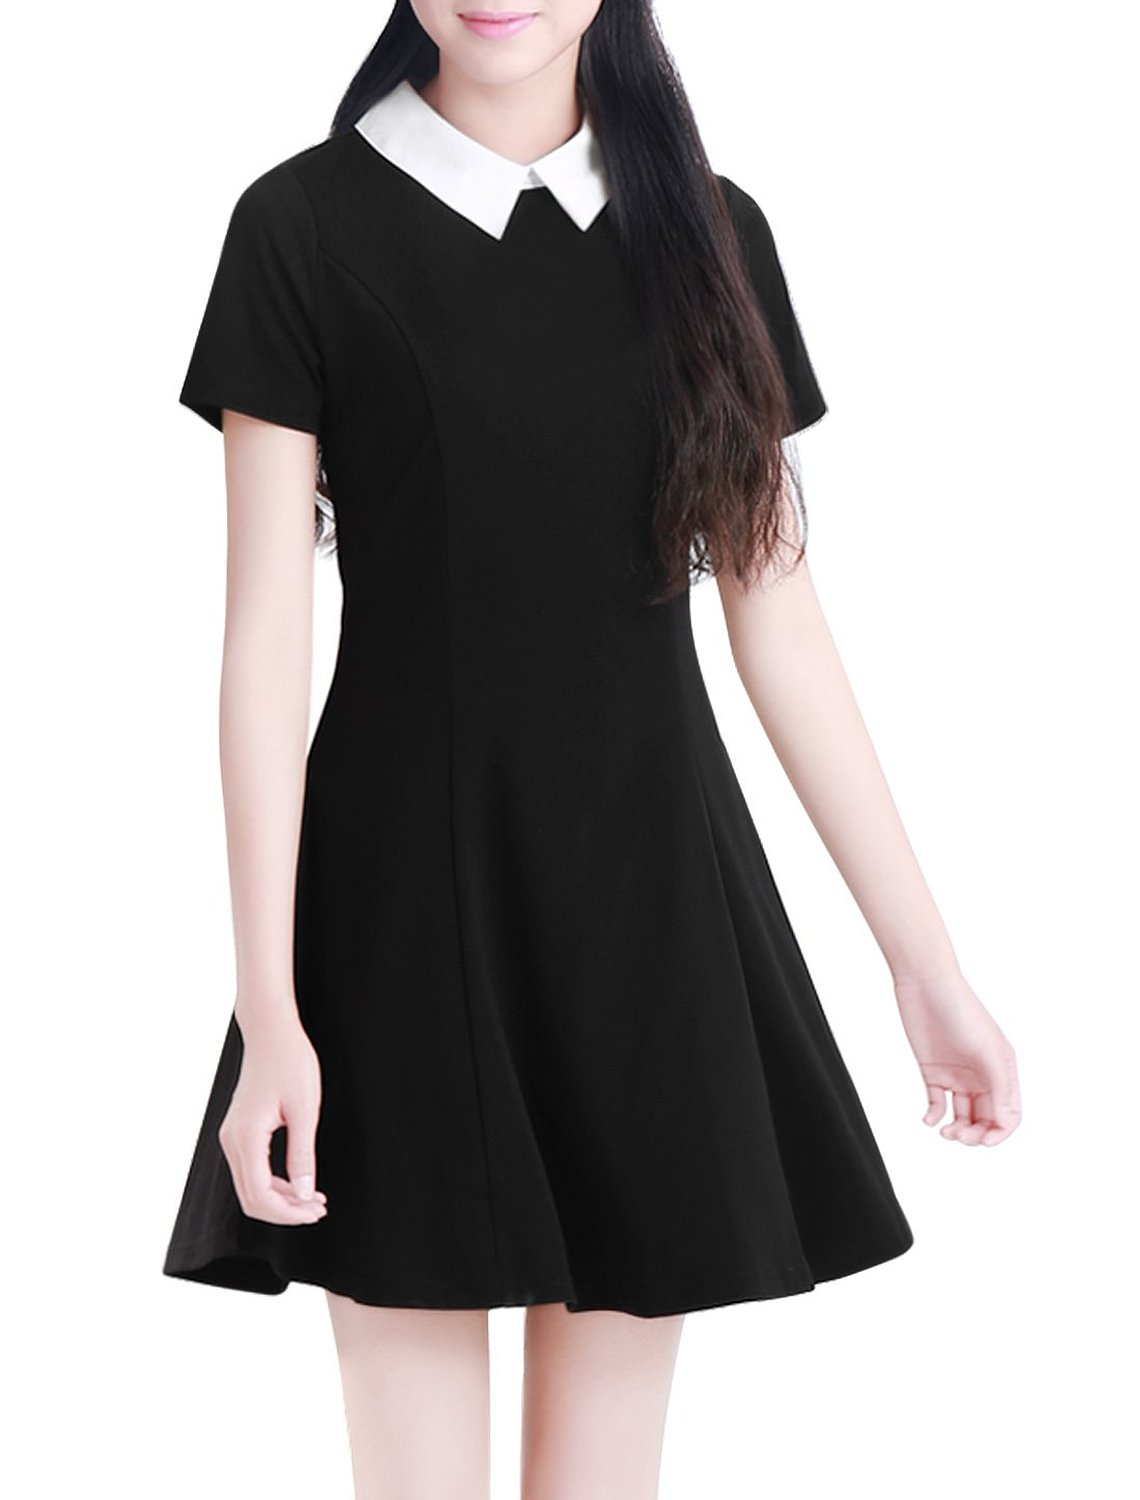 sports shoes 98df6 e067c Amazon.com: Allegra K Women Contrast Doll Collar Short Sleeves Above Knee  Flare Dress: Clothing